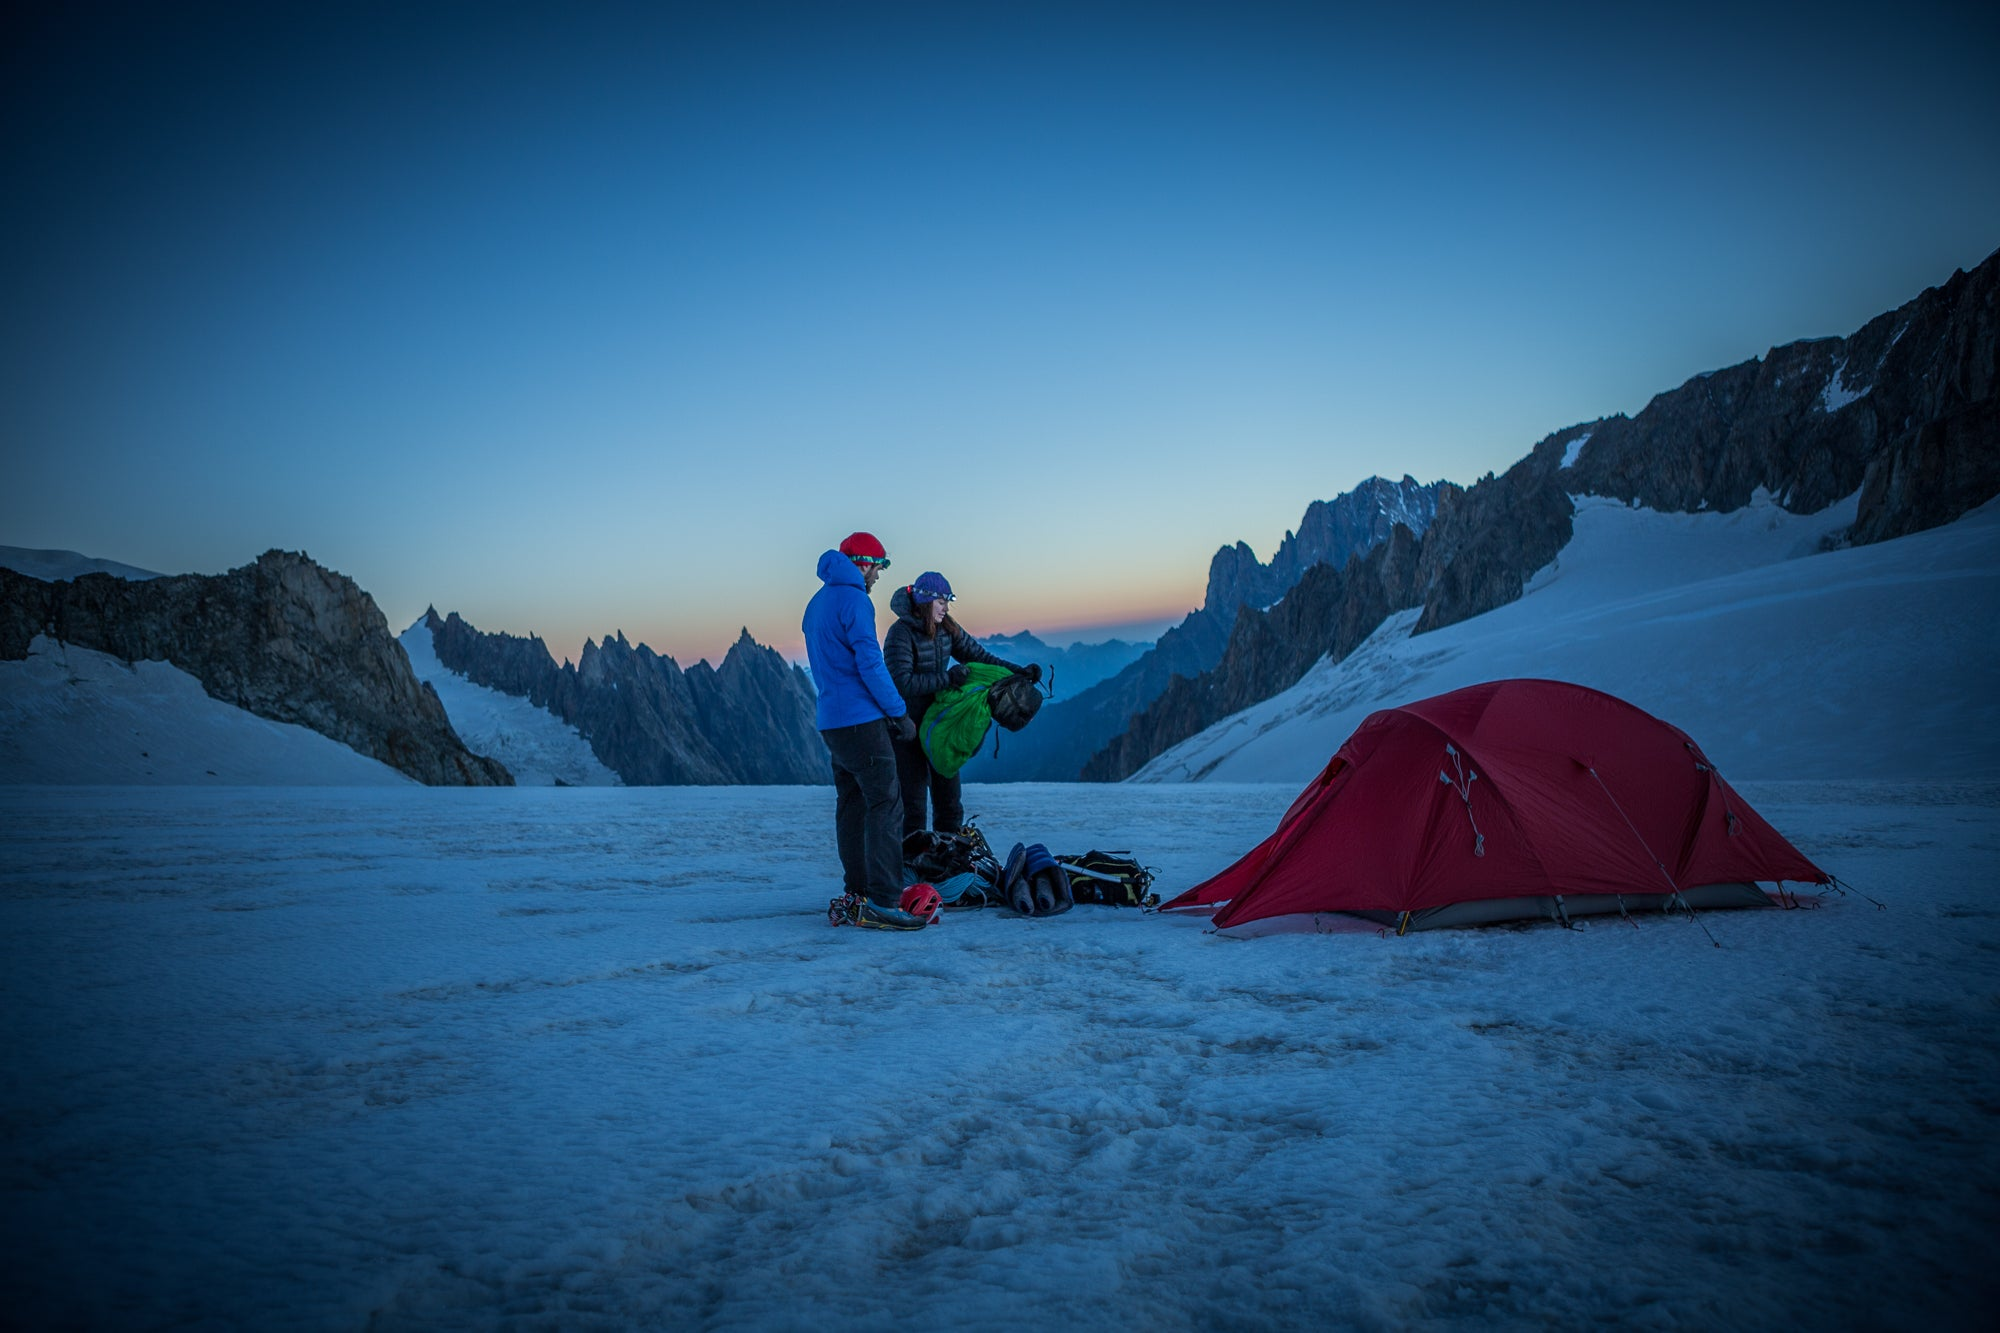 Two people pitching a 4 season mountain tent in the alps